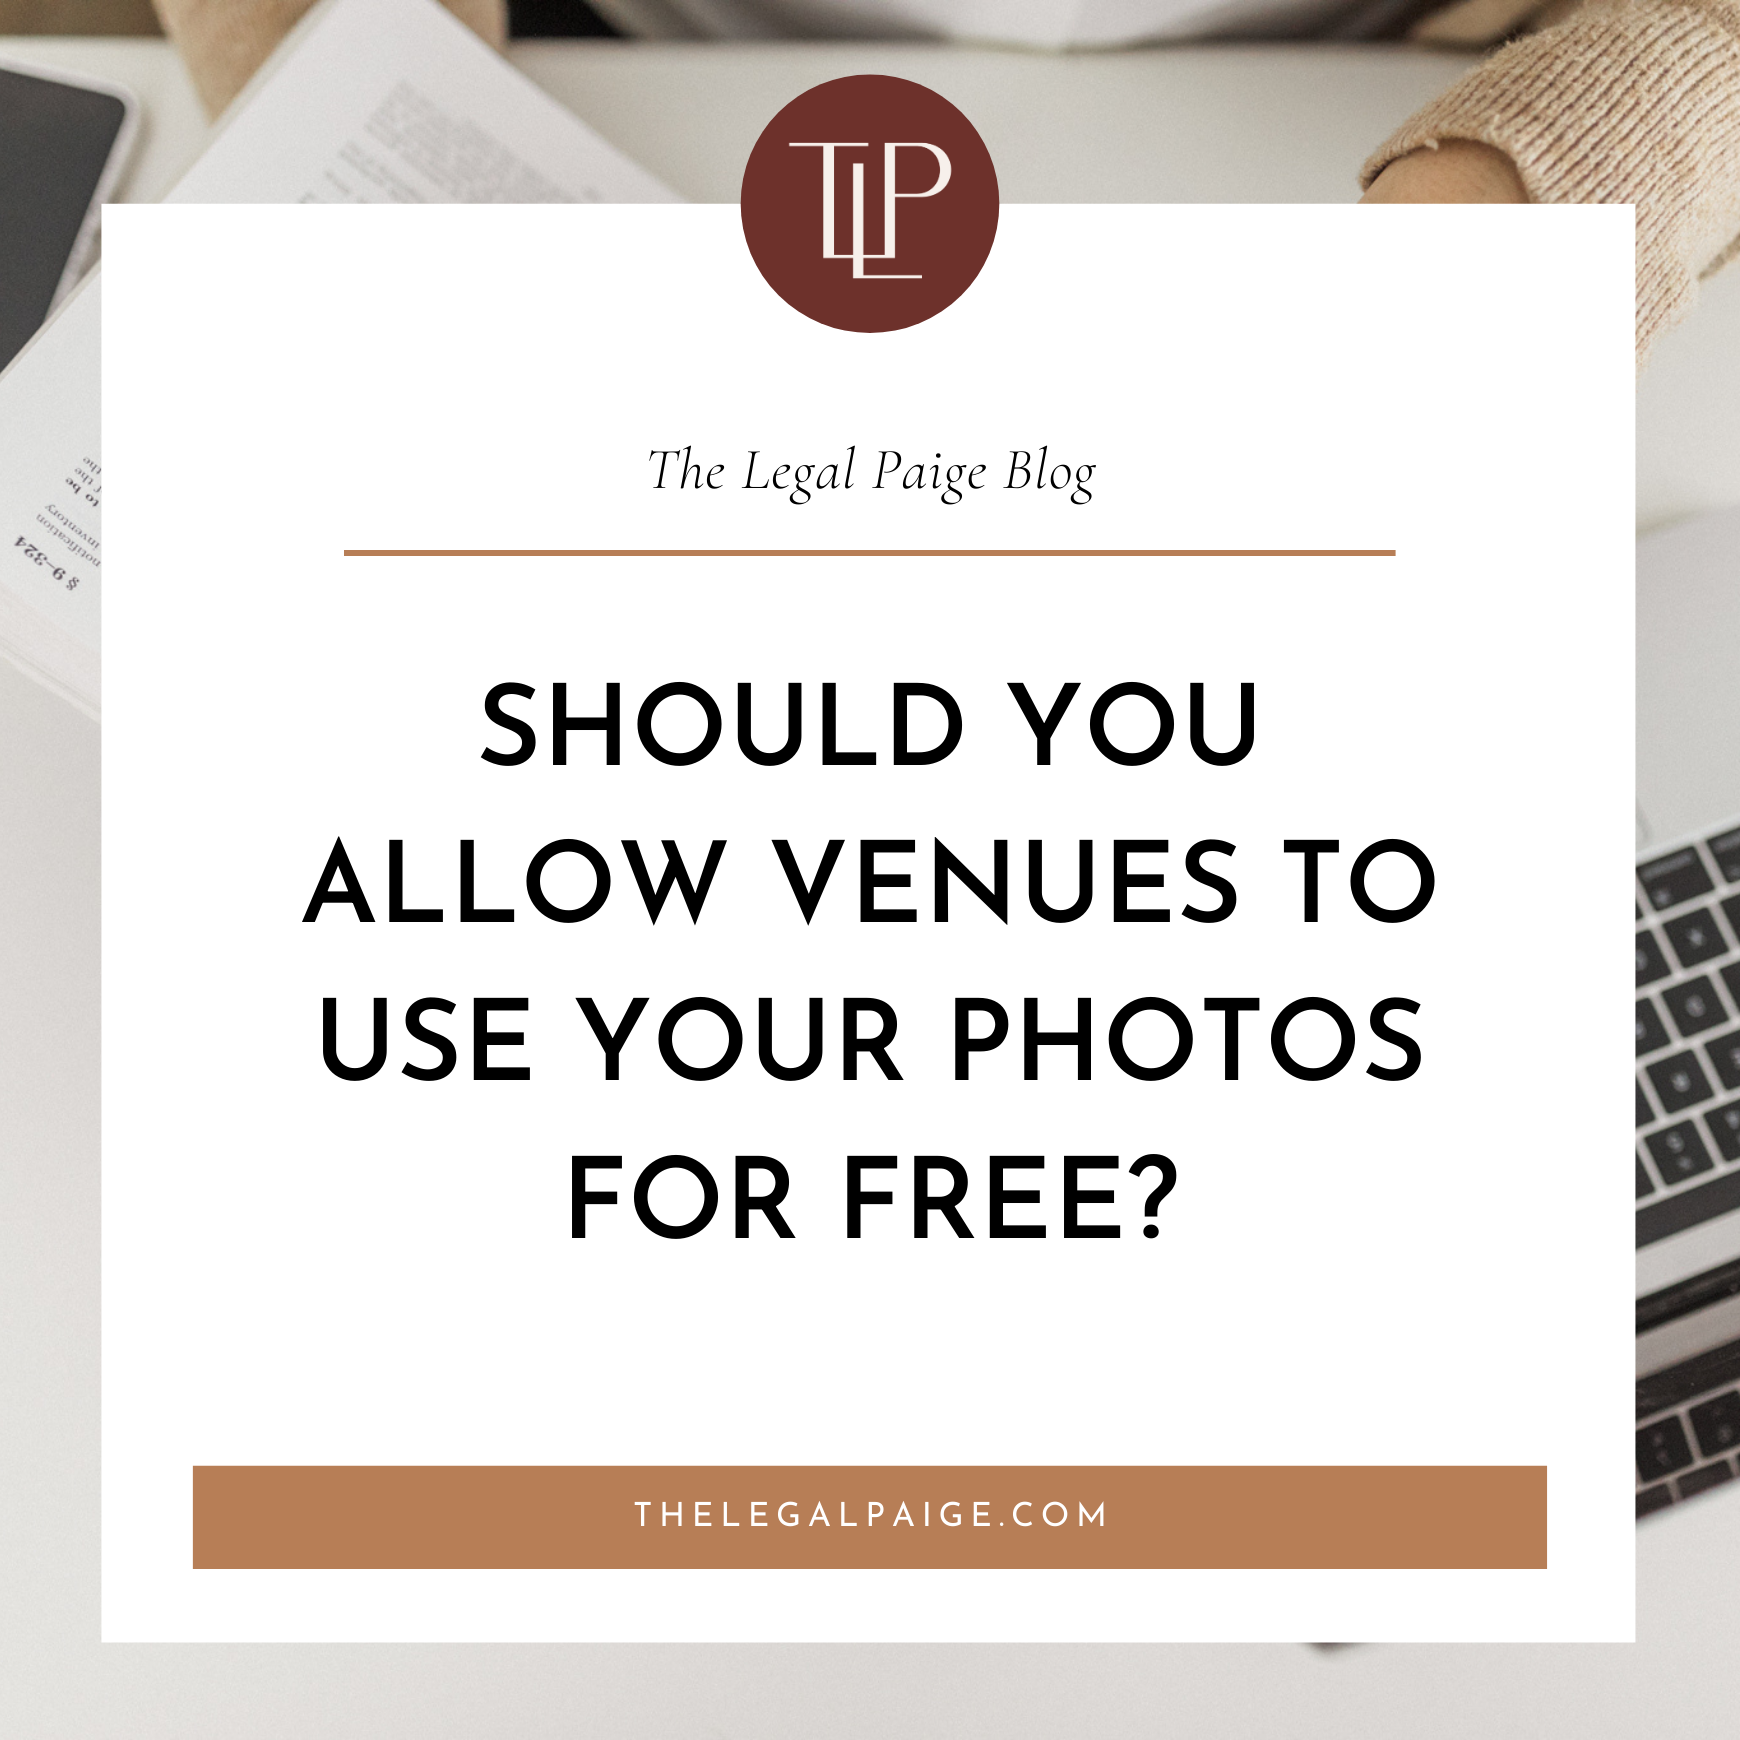 Should You Allow Venues to Use Your Photos for Free?